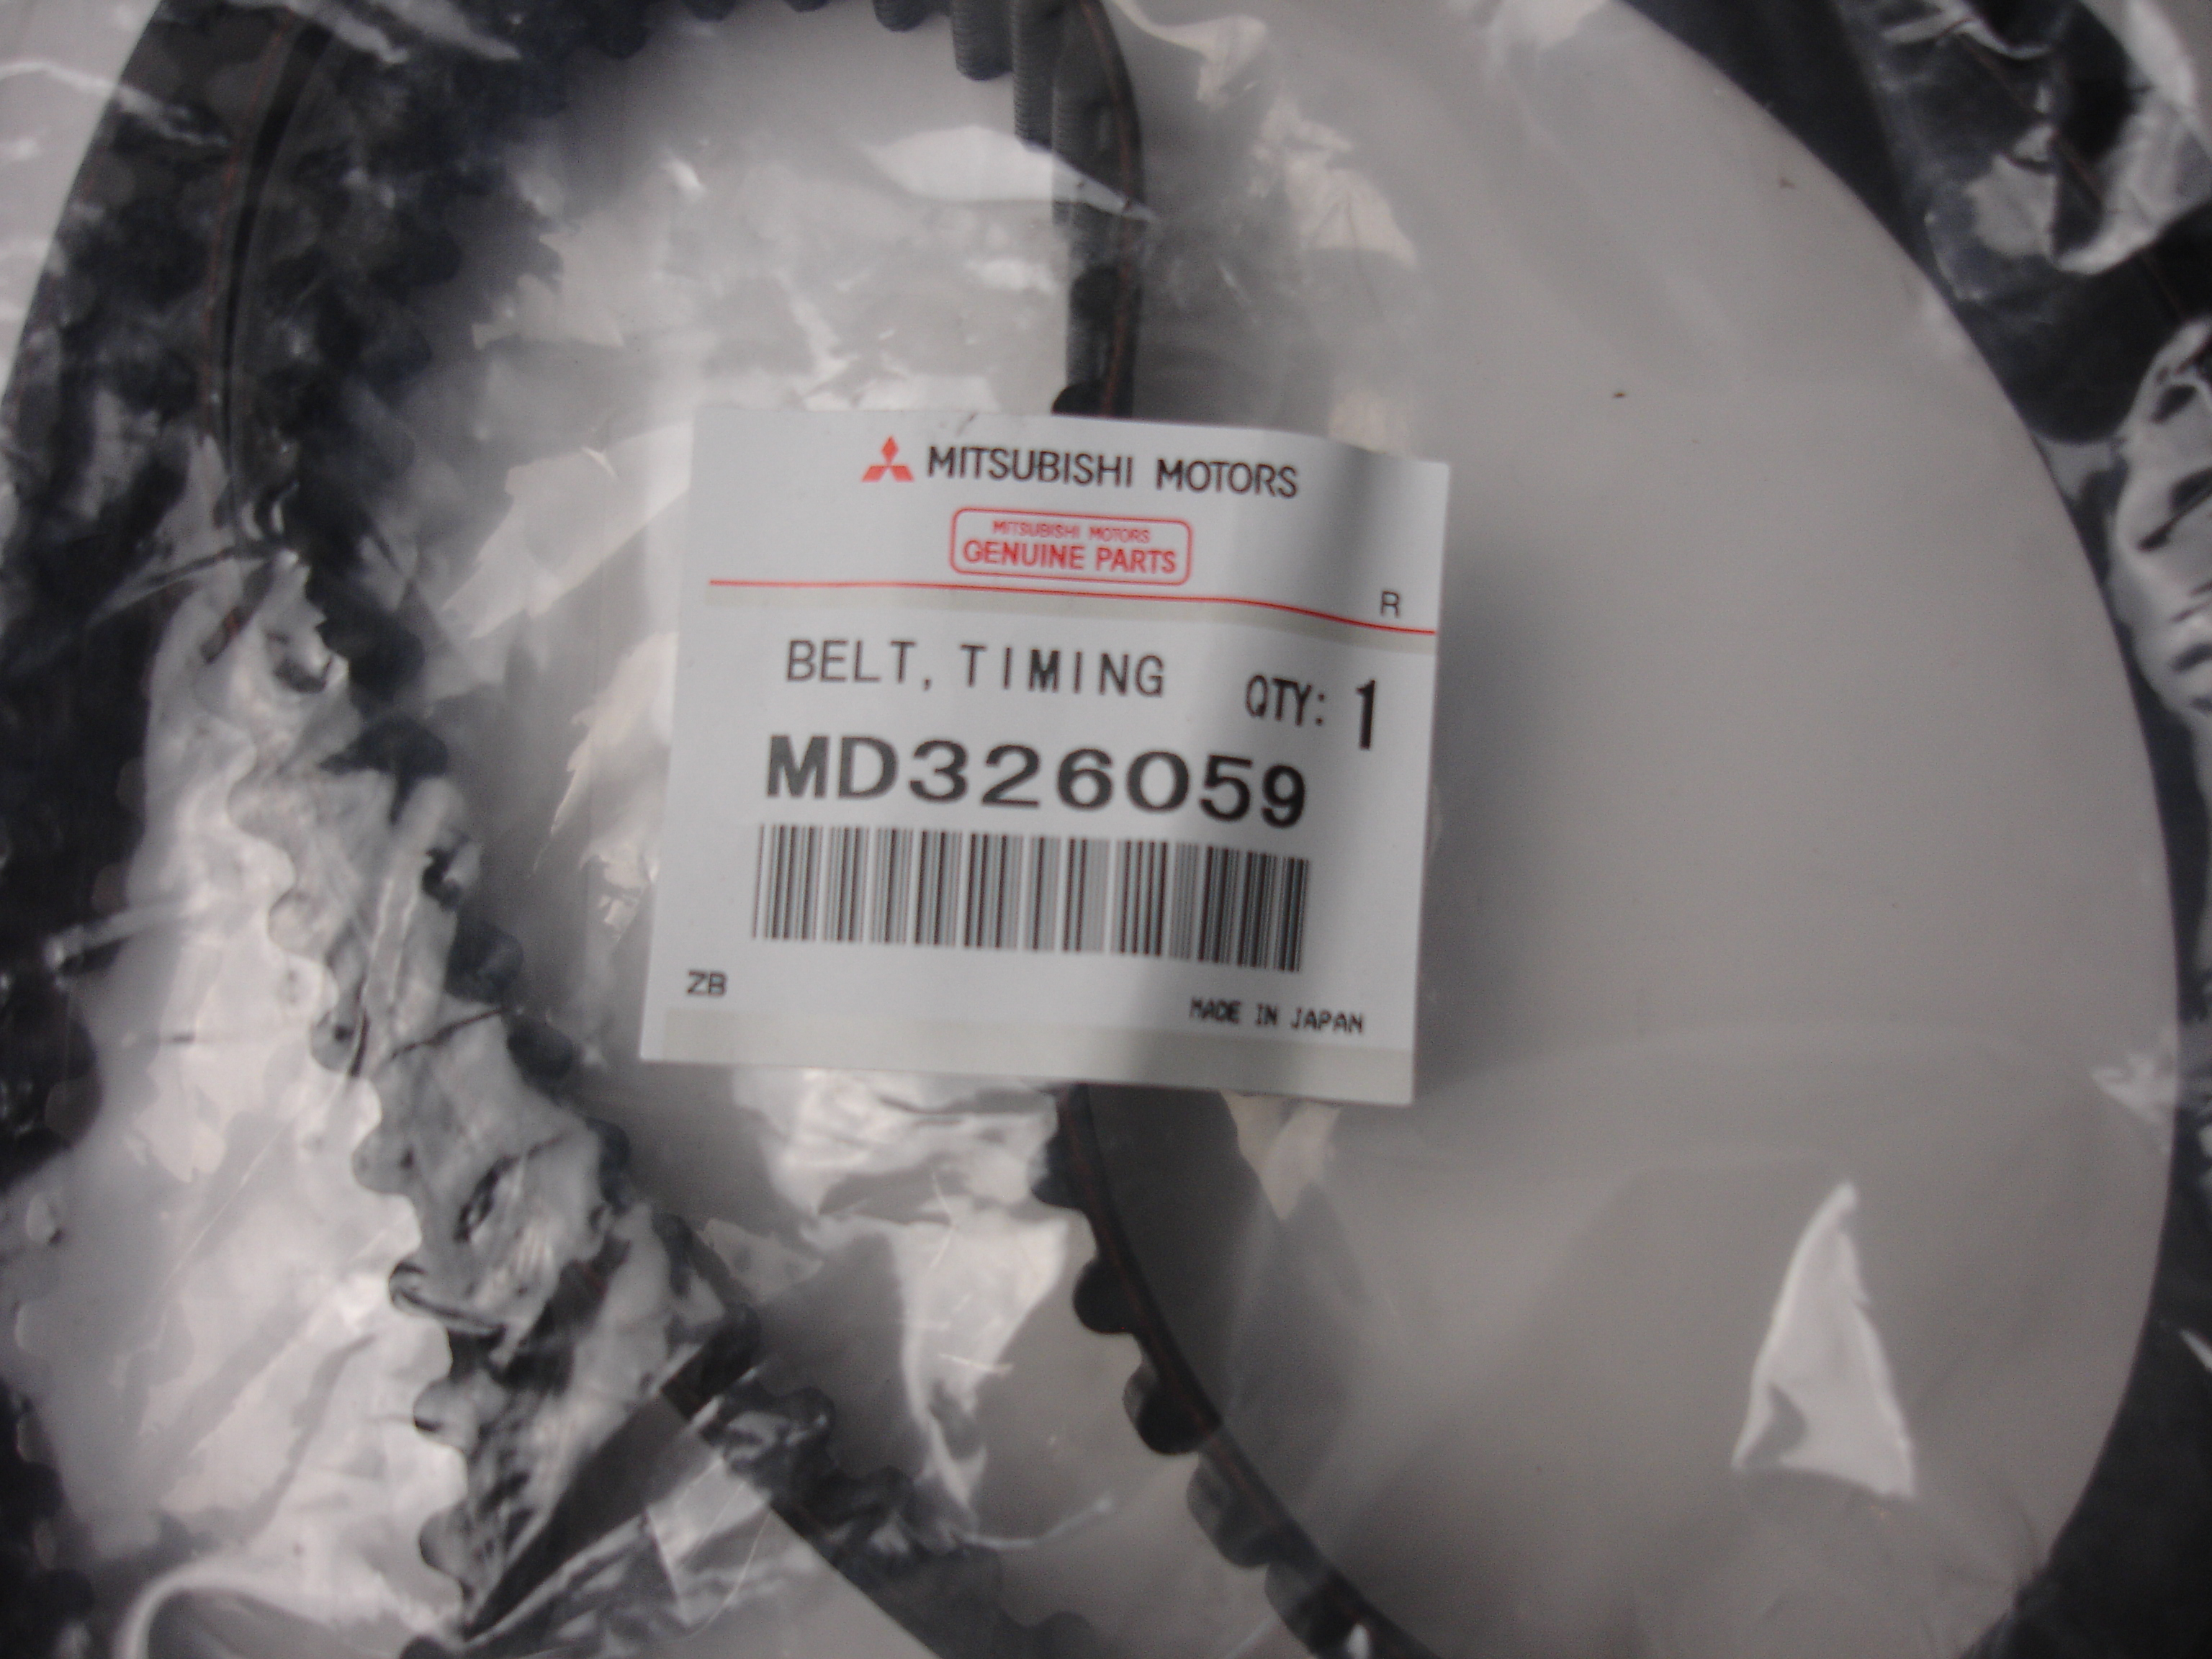 MD326059 Mitsubishi 4G63 Turbo Timing Belt